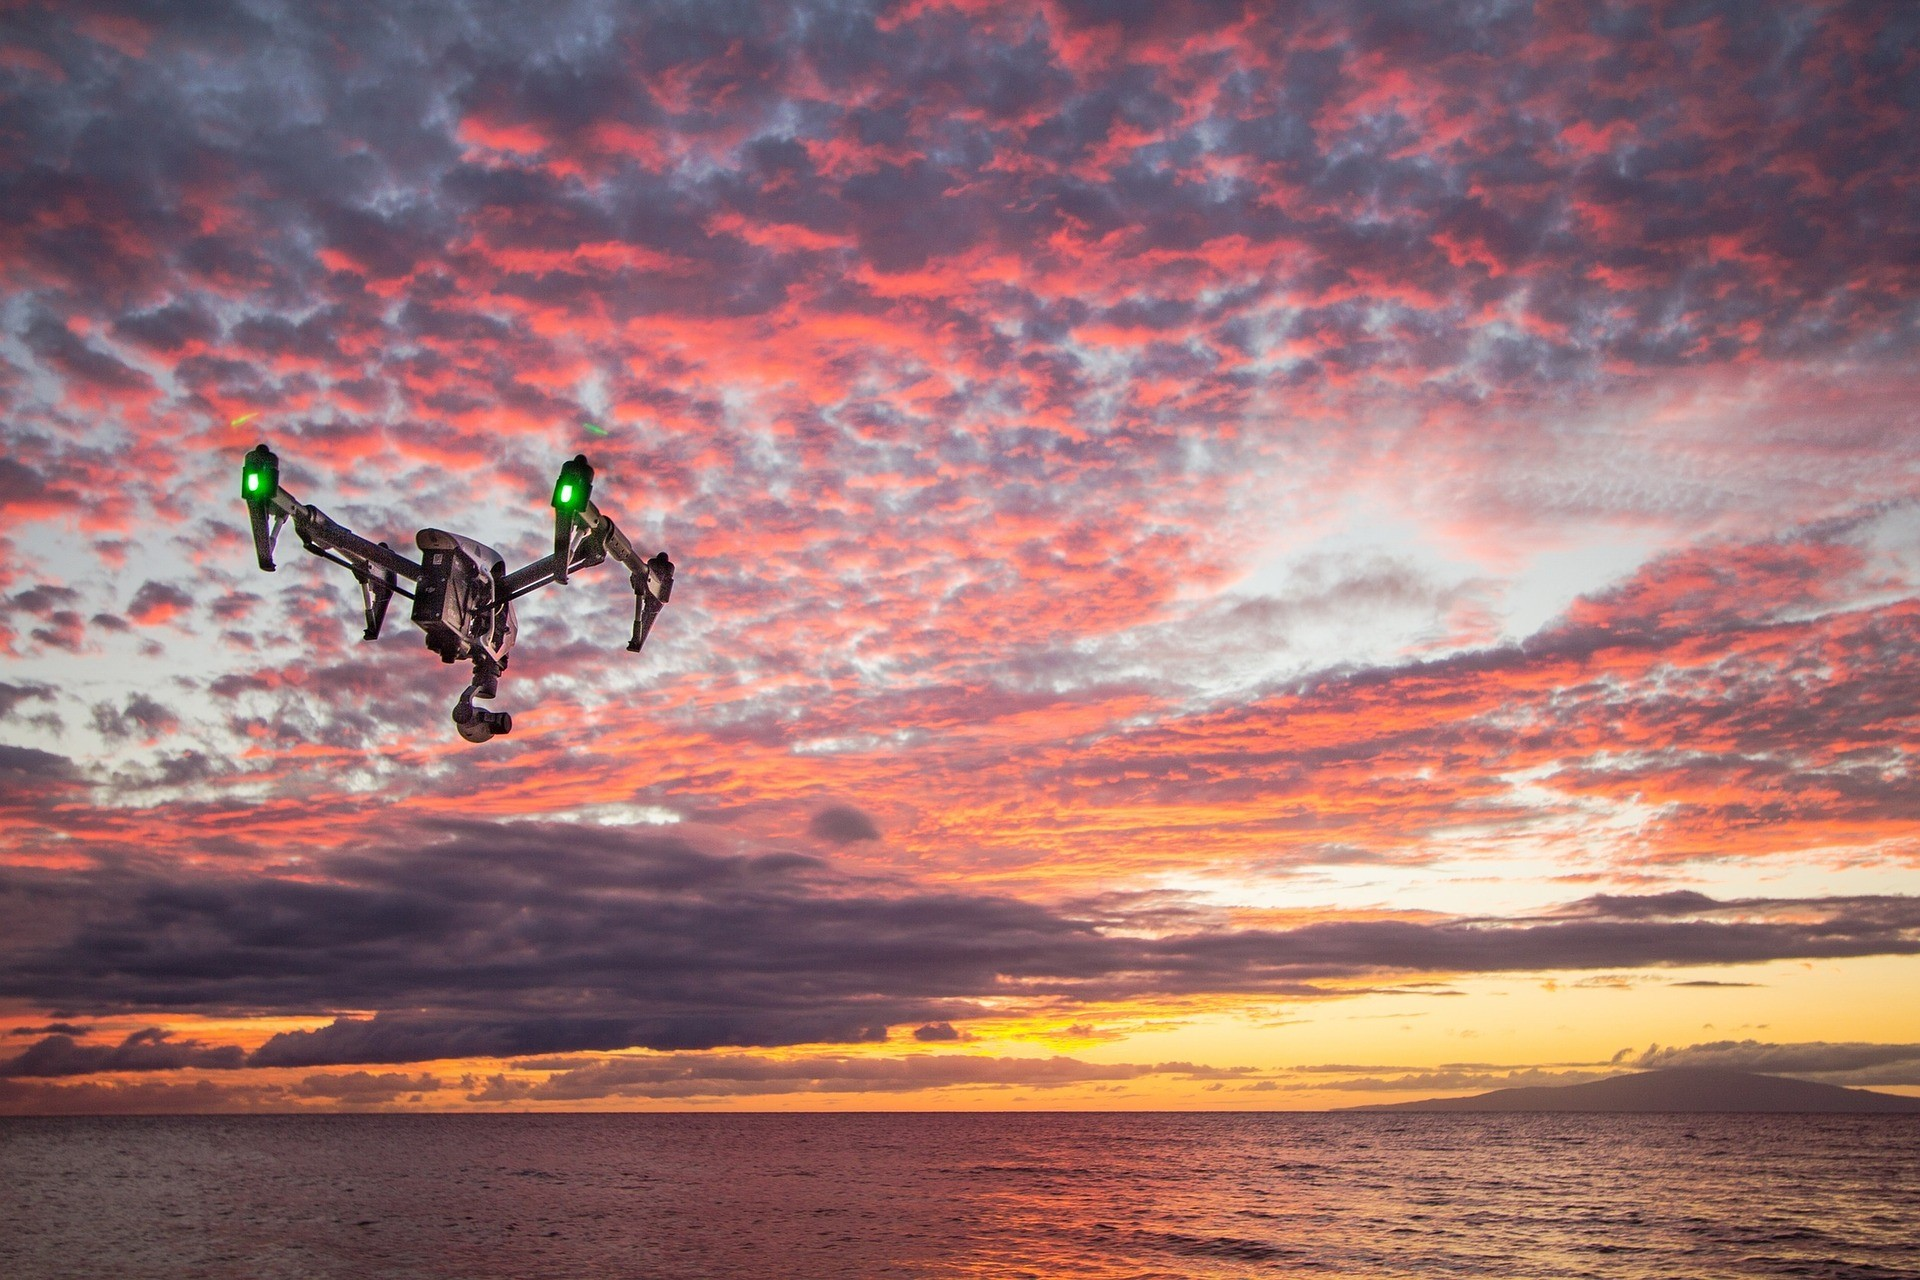 Drone at sunset under clouded skies